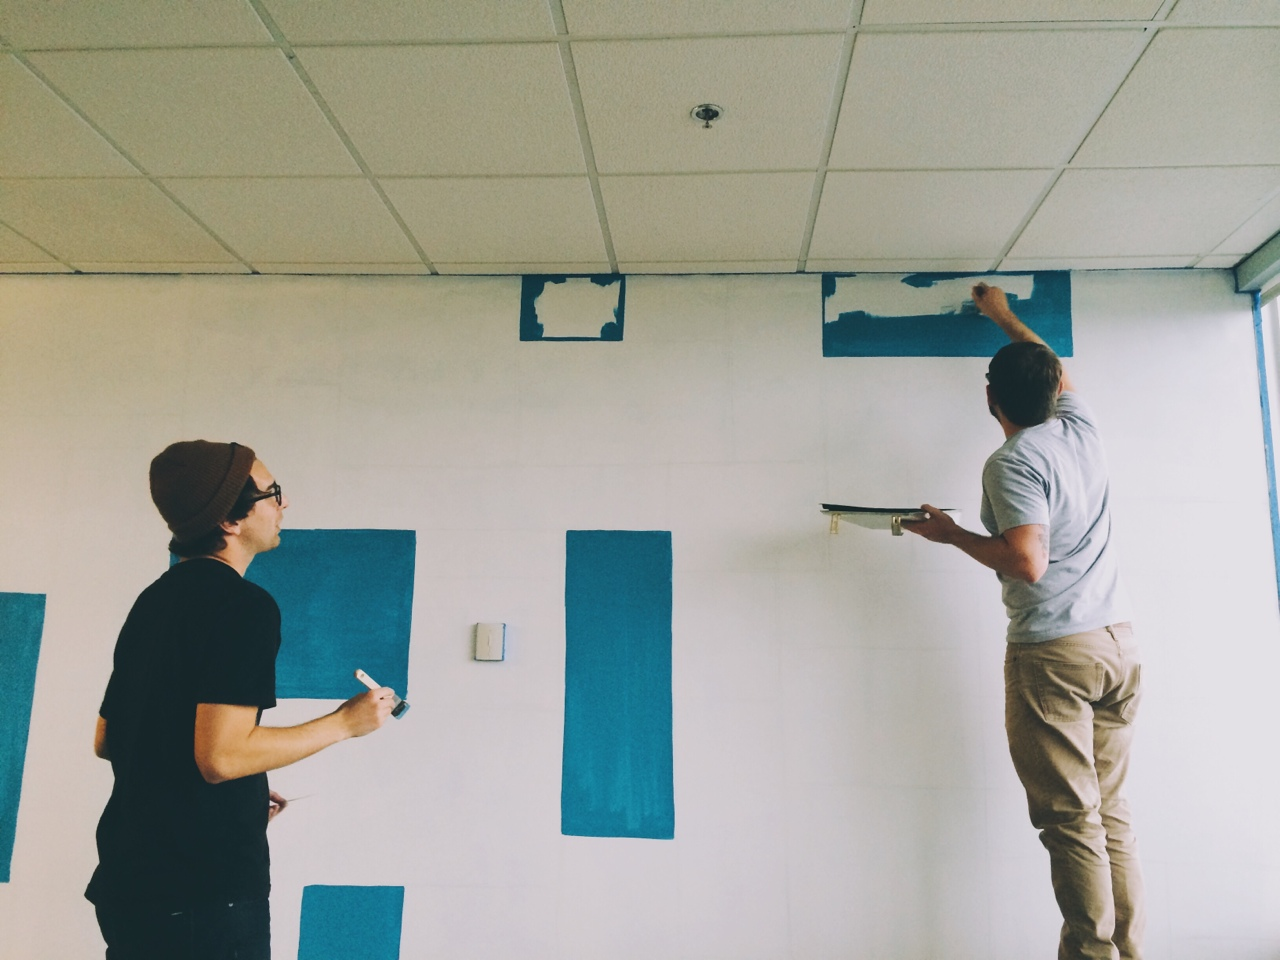 Painted a mural at work this past weekend. I fortunate enough to enlist some help from a couple of friends.